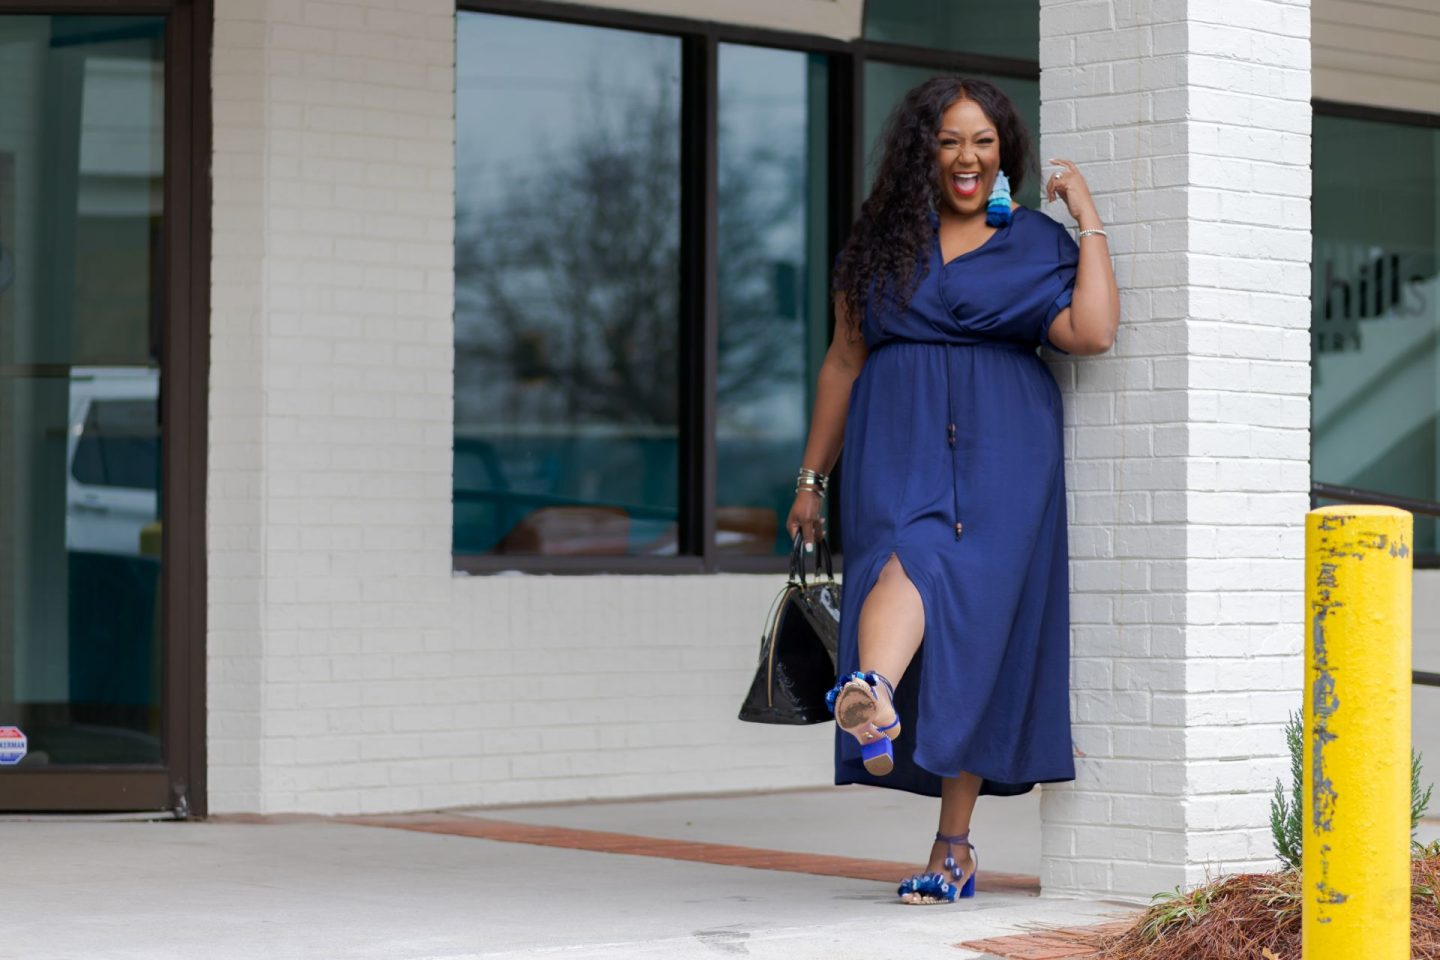 Black Woman in blue dress kicking up her leg